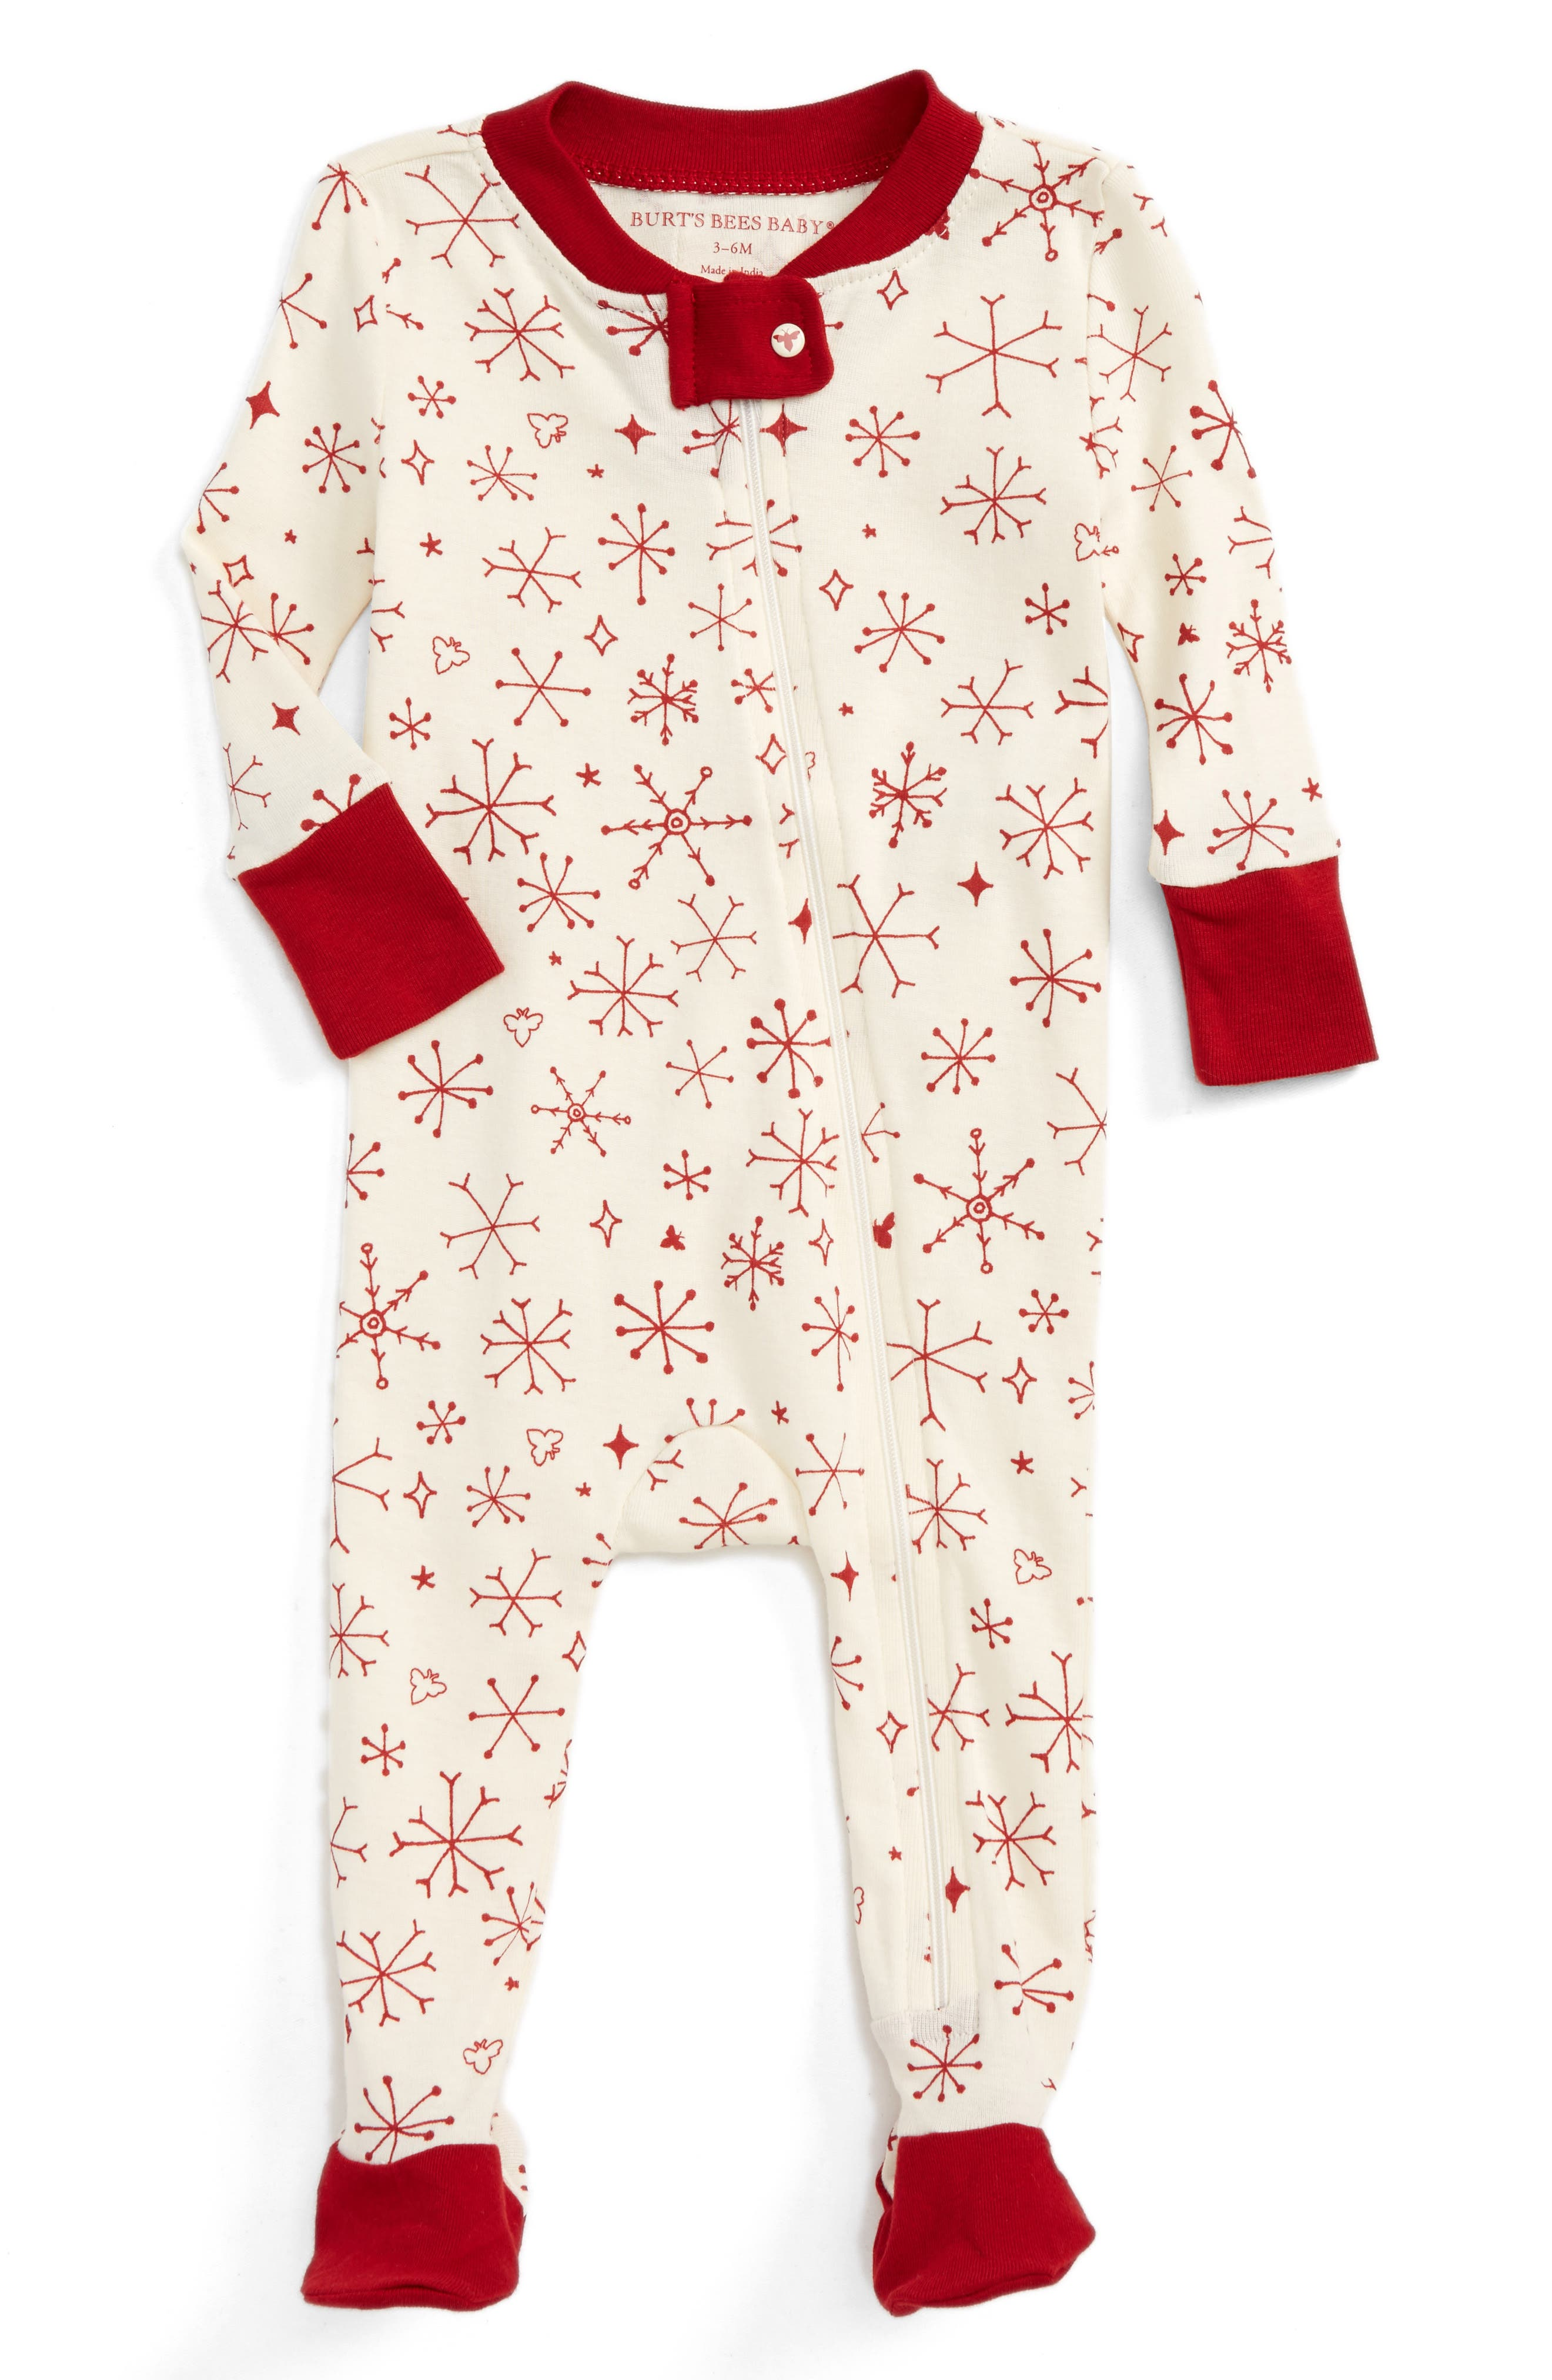 BURT'S BEES BABY,                             Falling Snowflakes Fitted One-Piece Pajamas,                             Main thumbnail 1, color,                             900